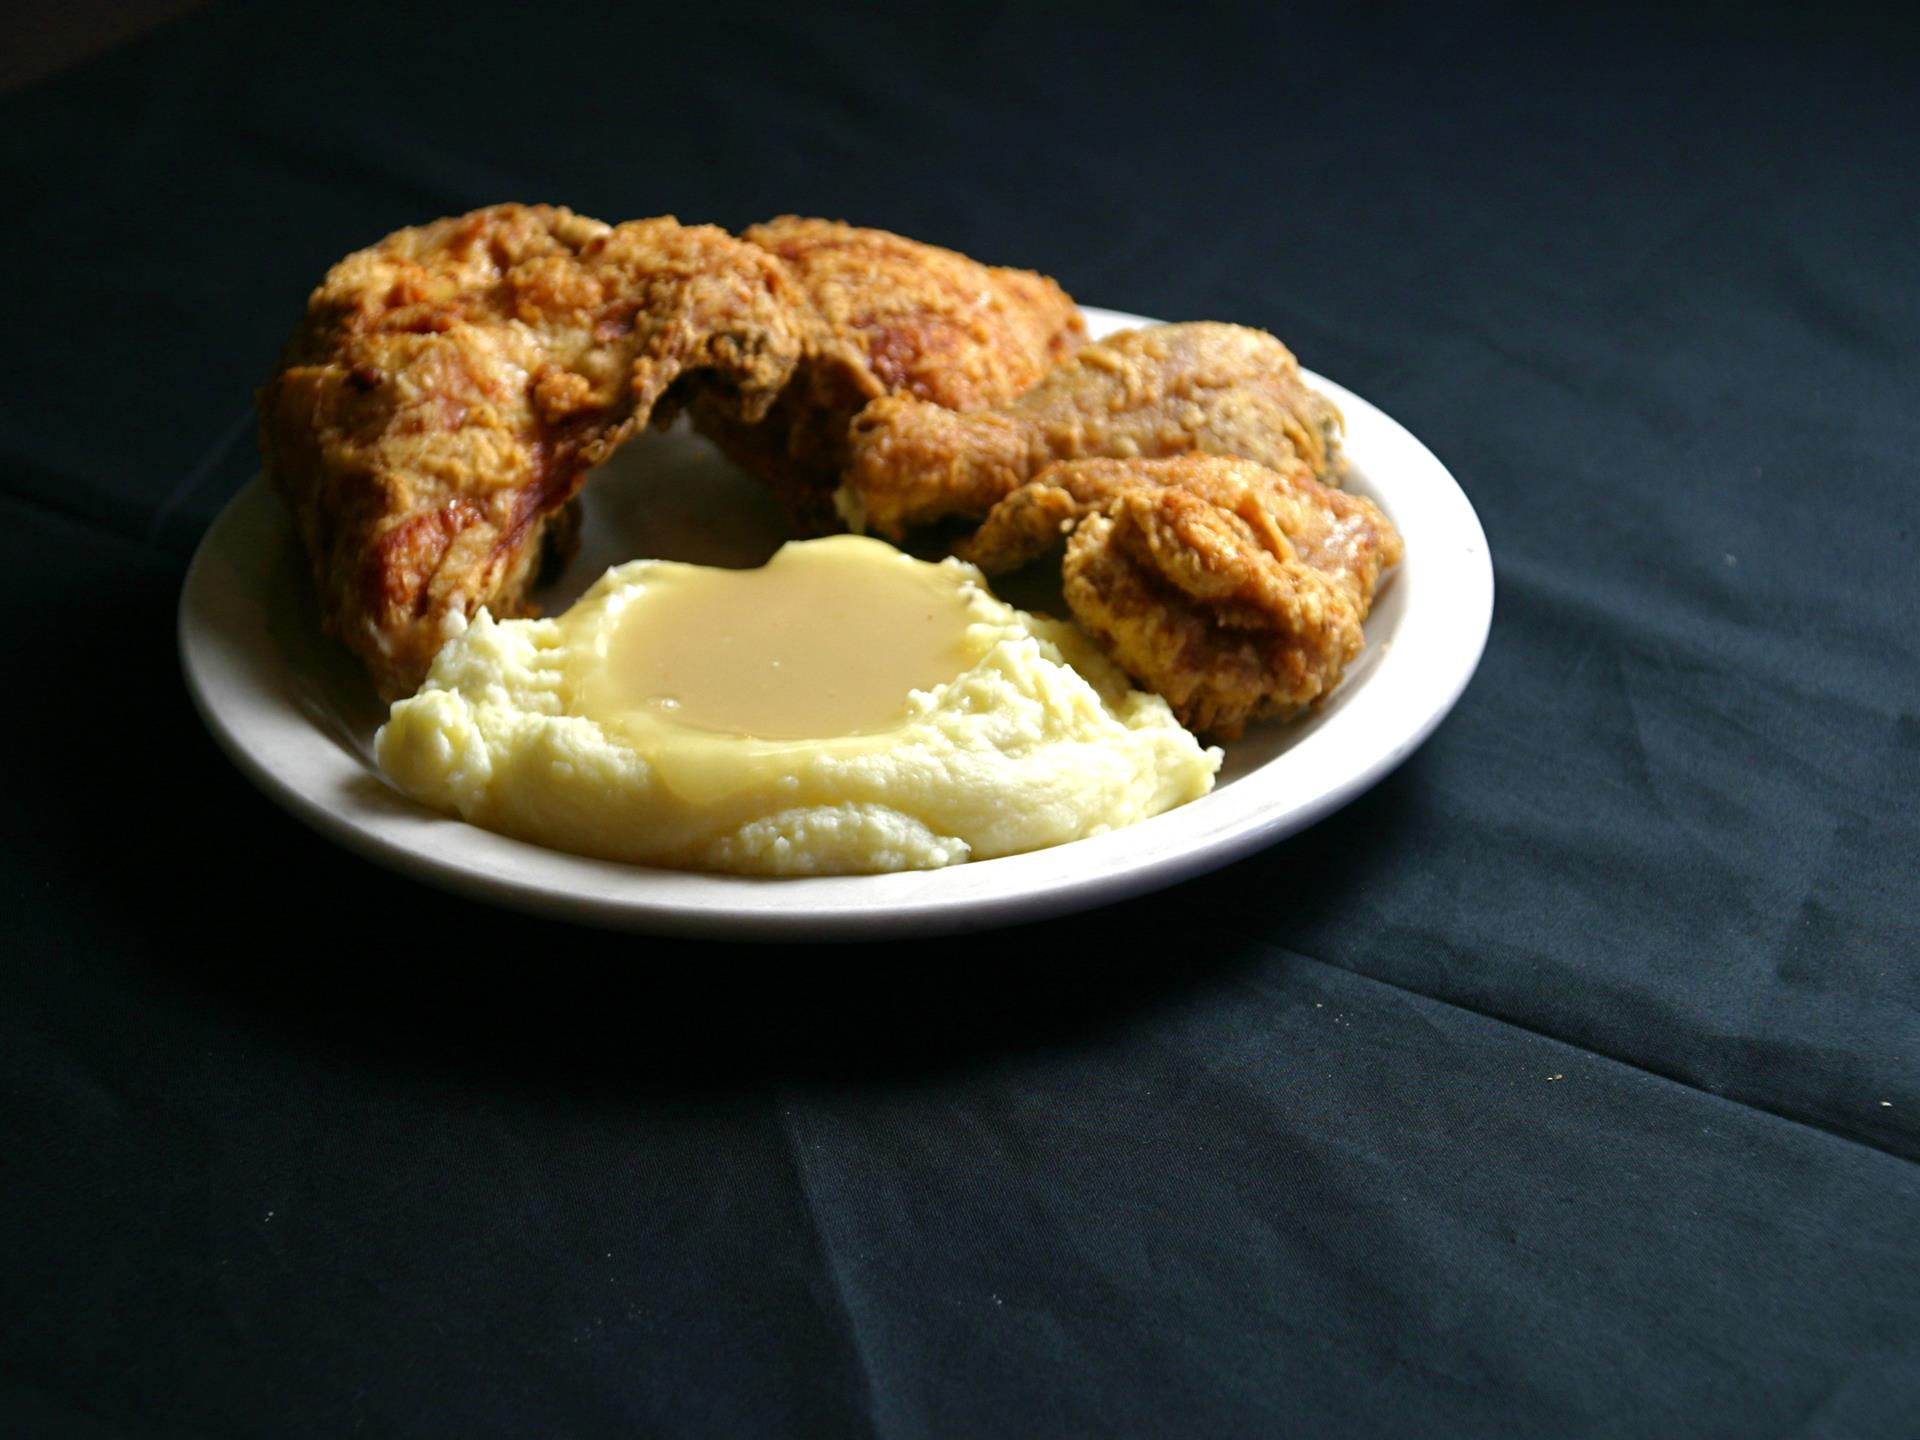 Fried chicken served with mashed potatoes with gravy